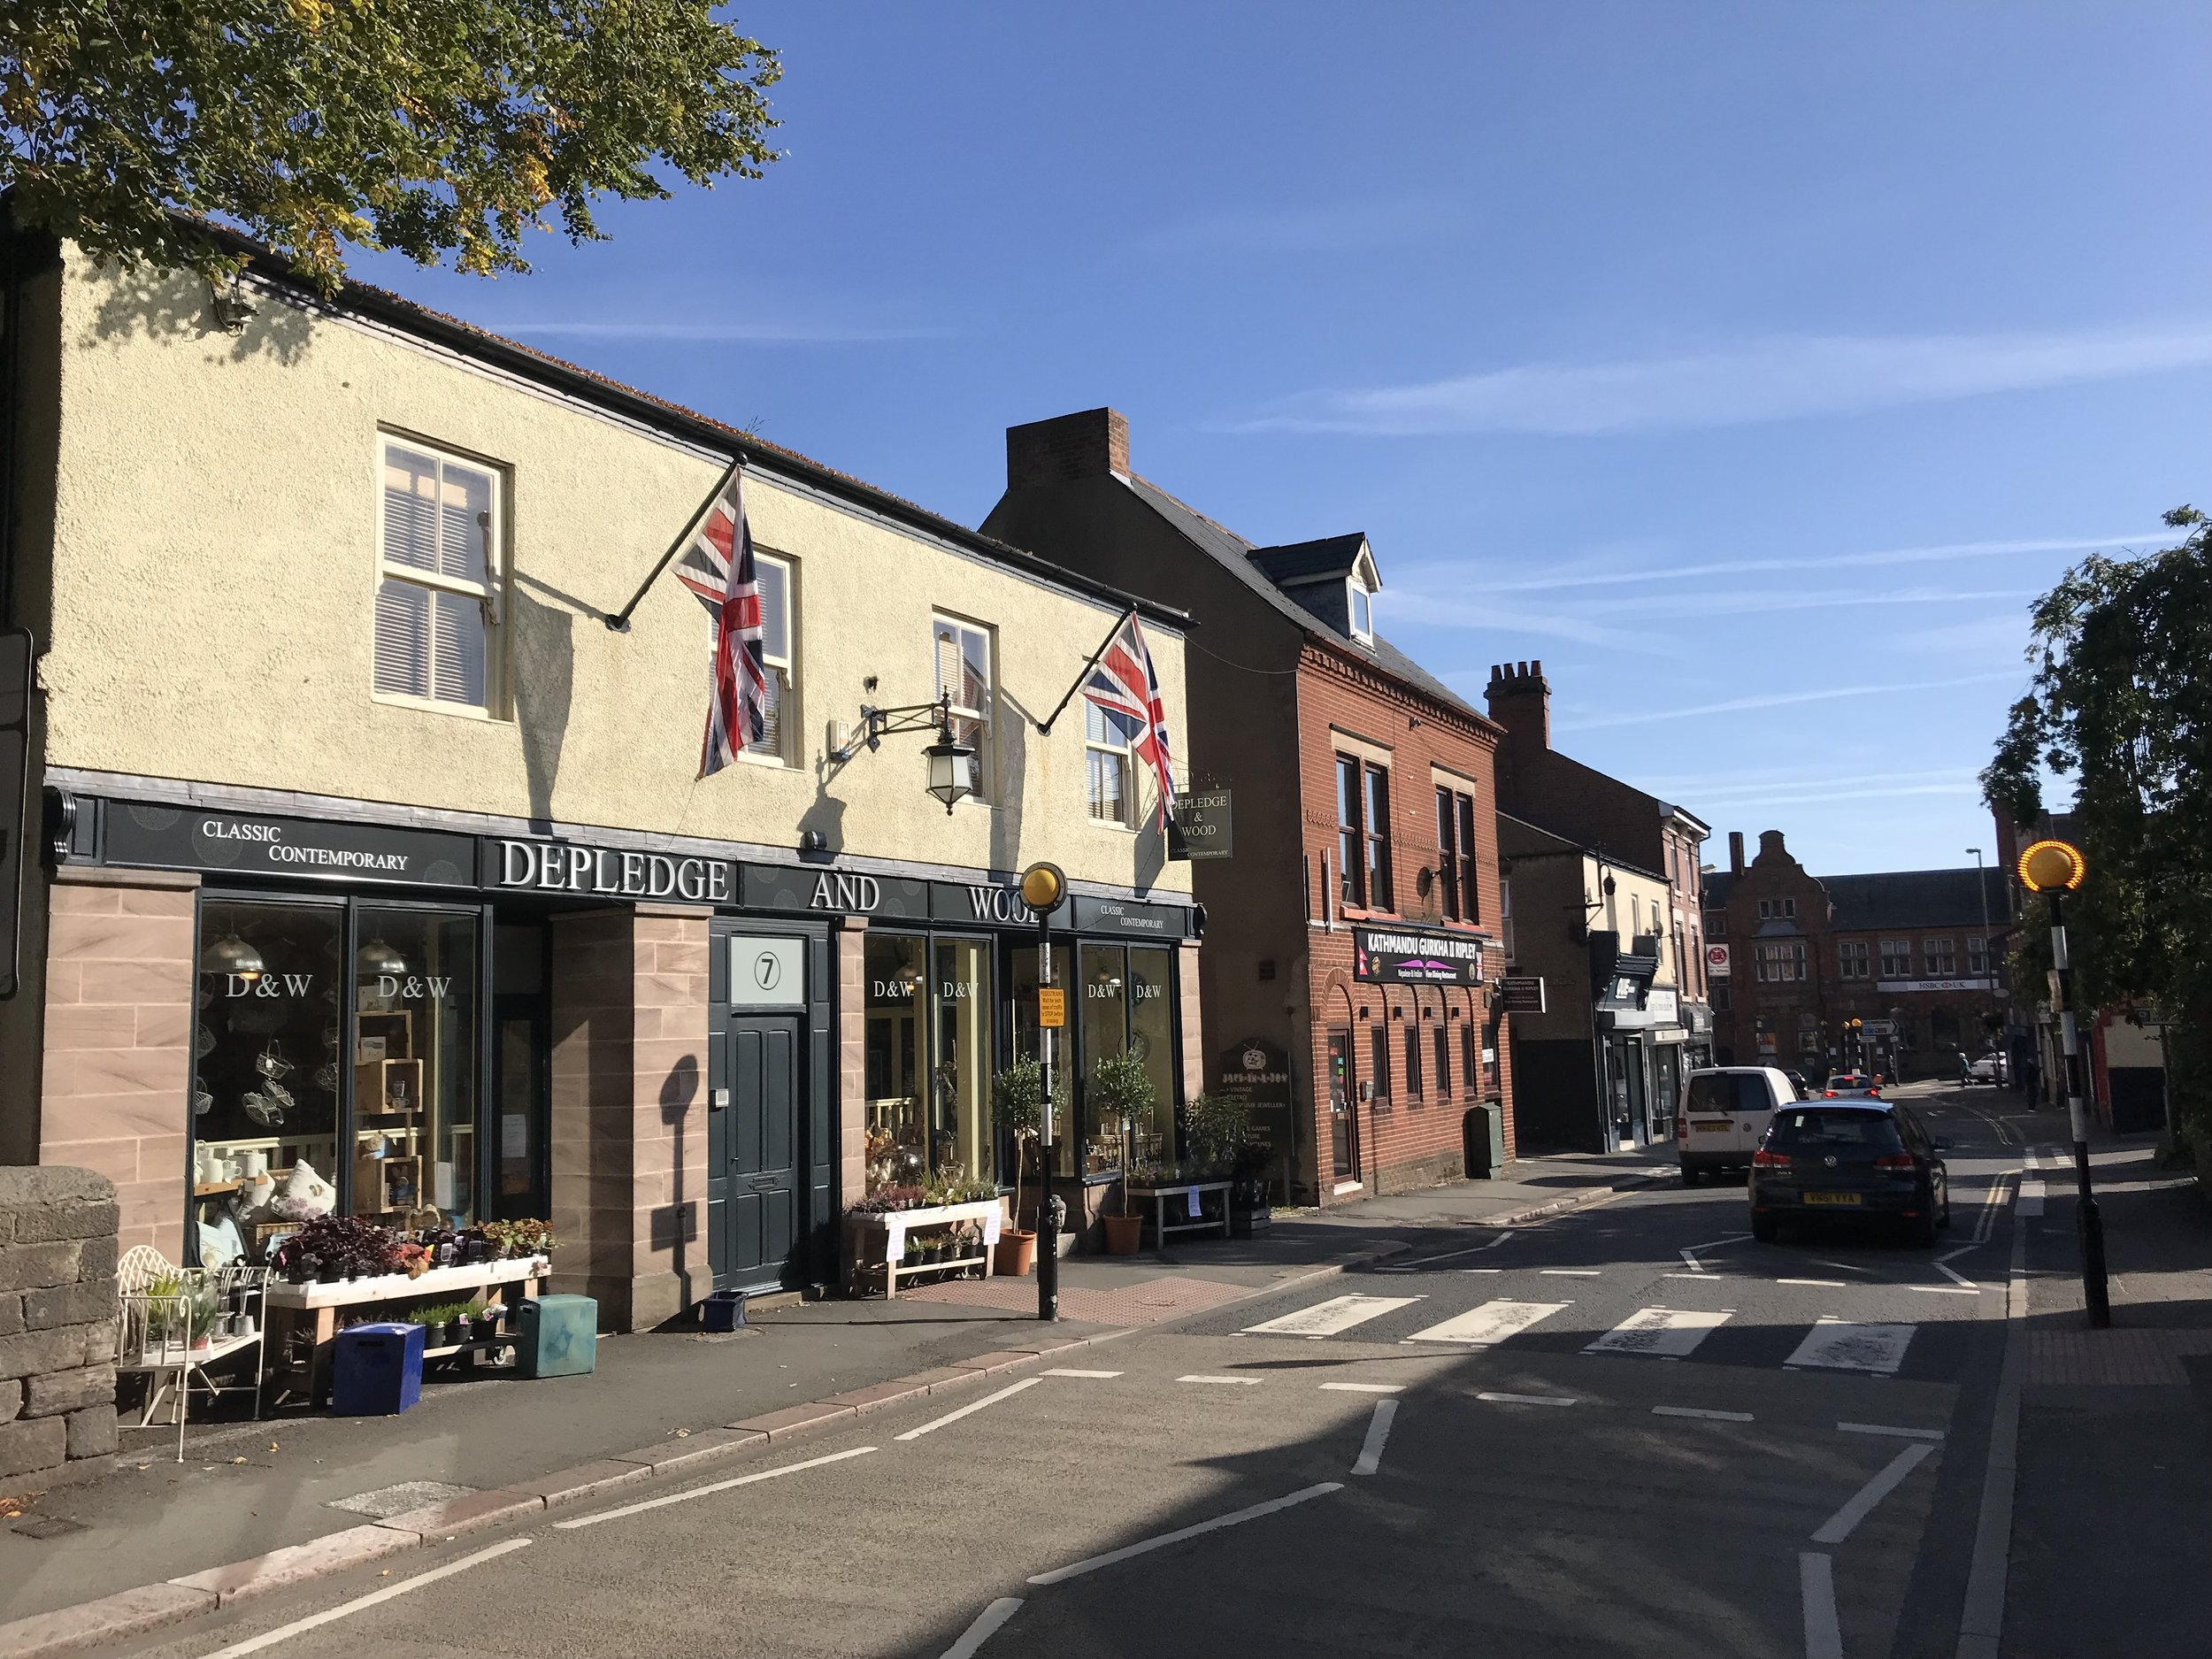 The market town of Ripley is a short walk from the Deer Park development. Penguin PR: public relations, media and communications